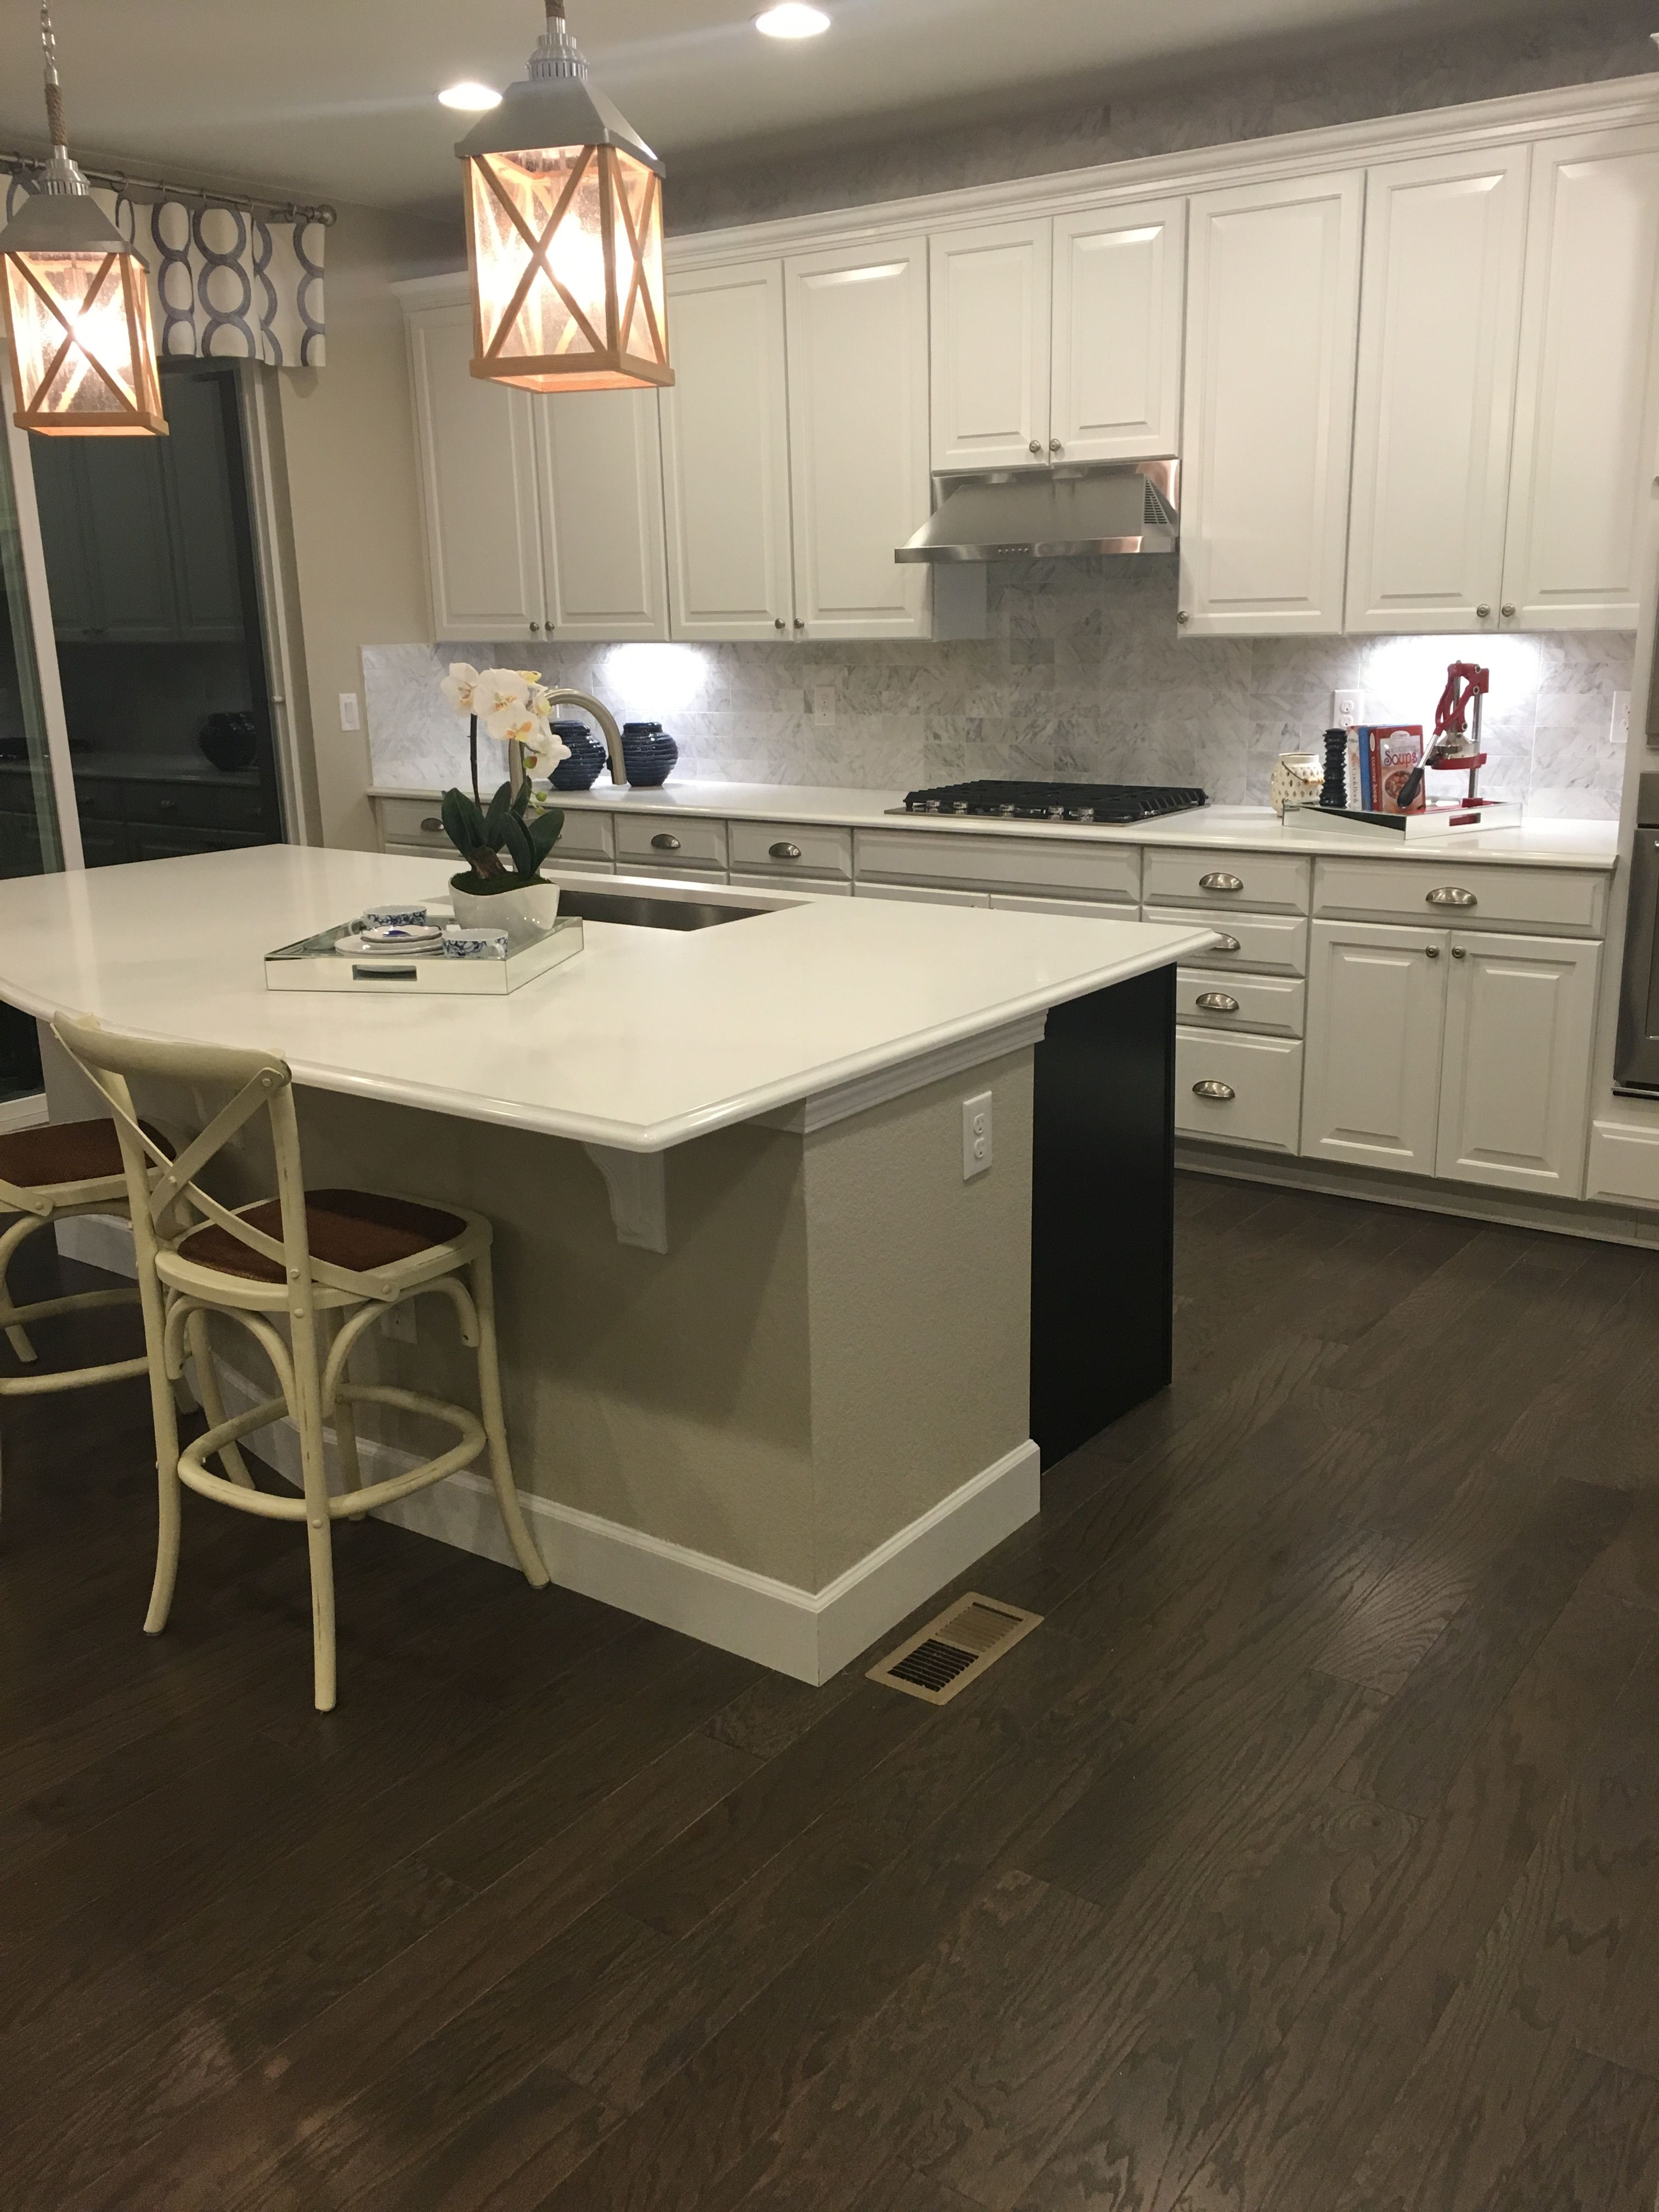 the sonoma white linen cabinets i picked out for my new ryan homes timberlake rushmore linen cabinets white quartz ctop marble backsplash